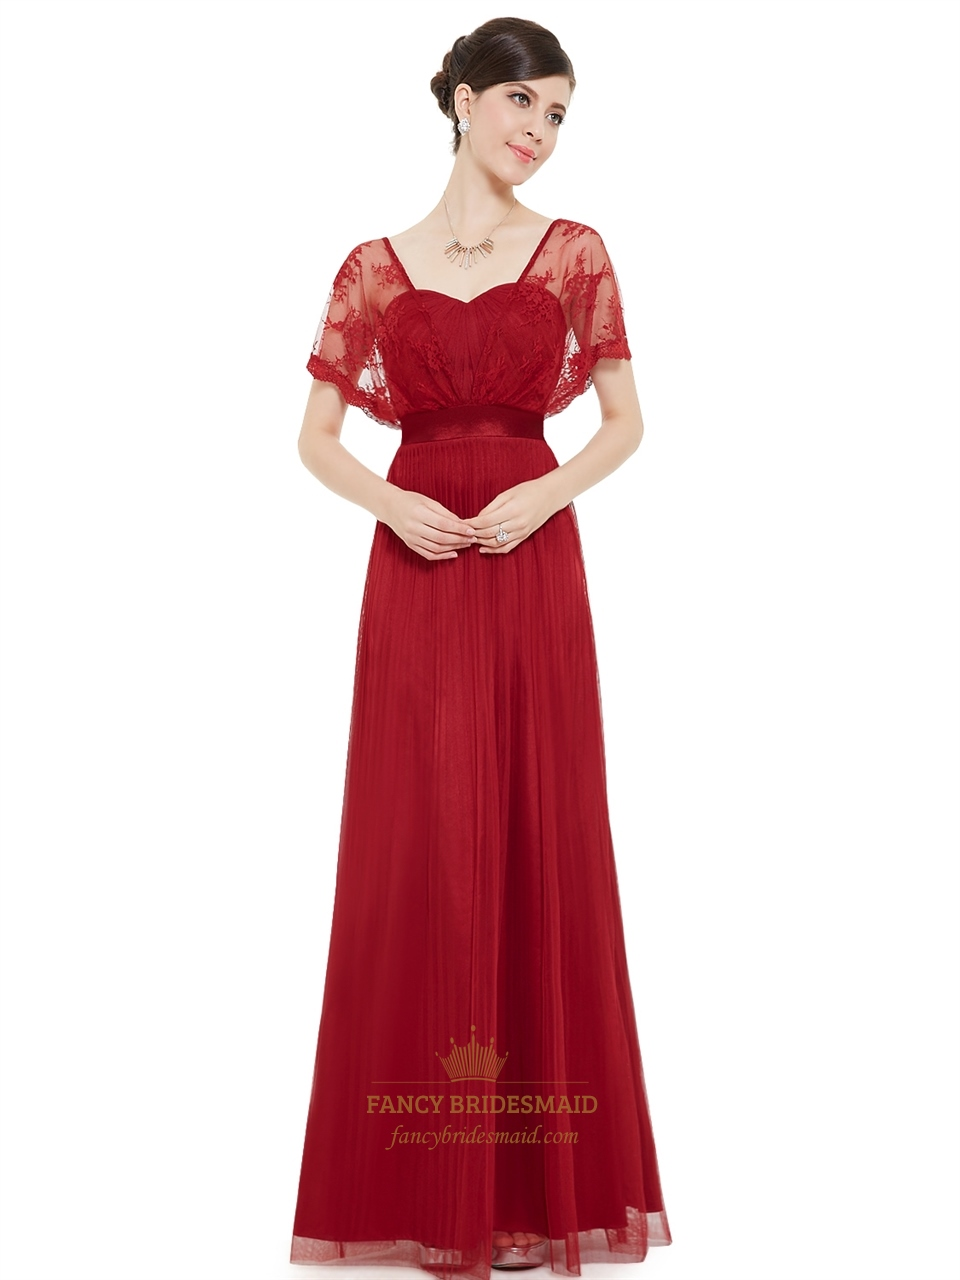 e766dfd024 Burgundy Chiffon Bridesmaid Dresses With Sheer Lace Flutter Sleeves SKU  -NW1205